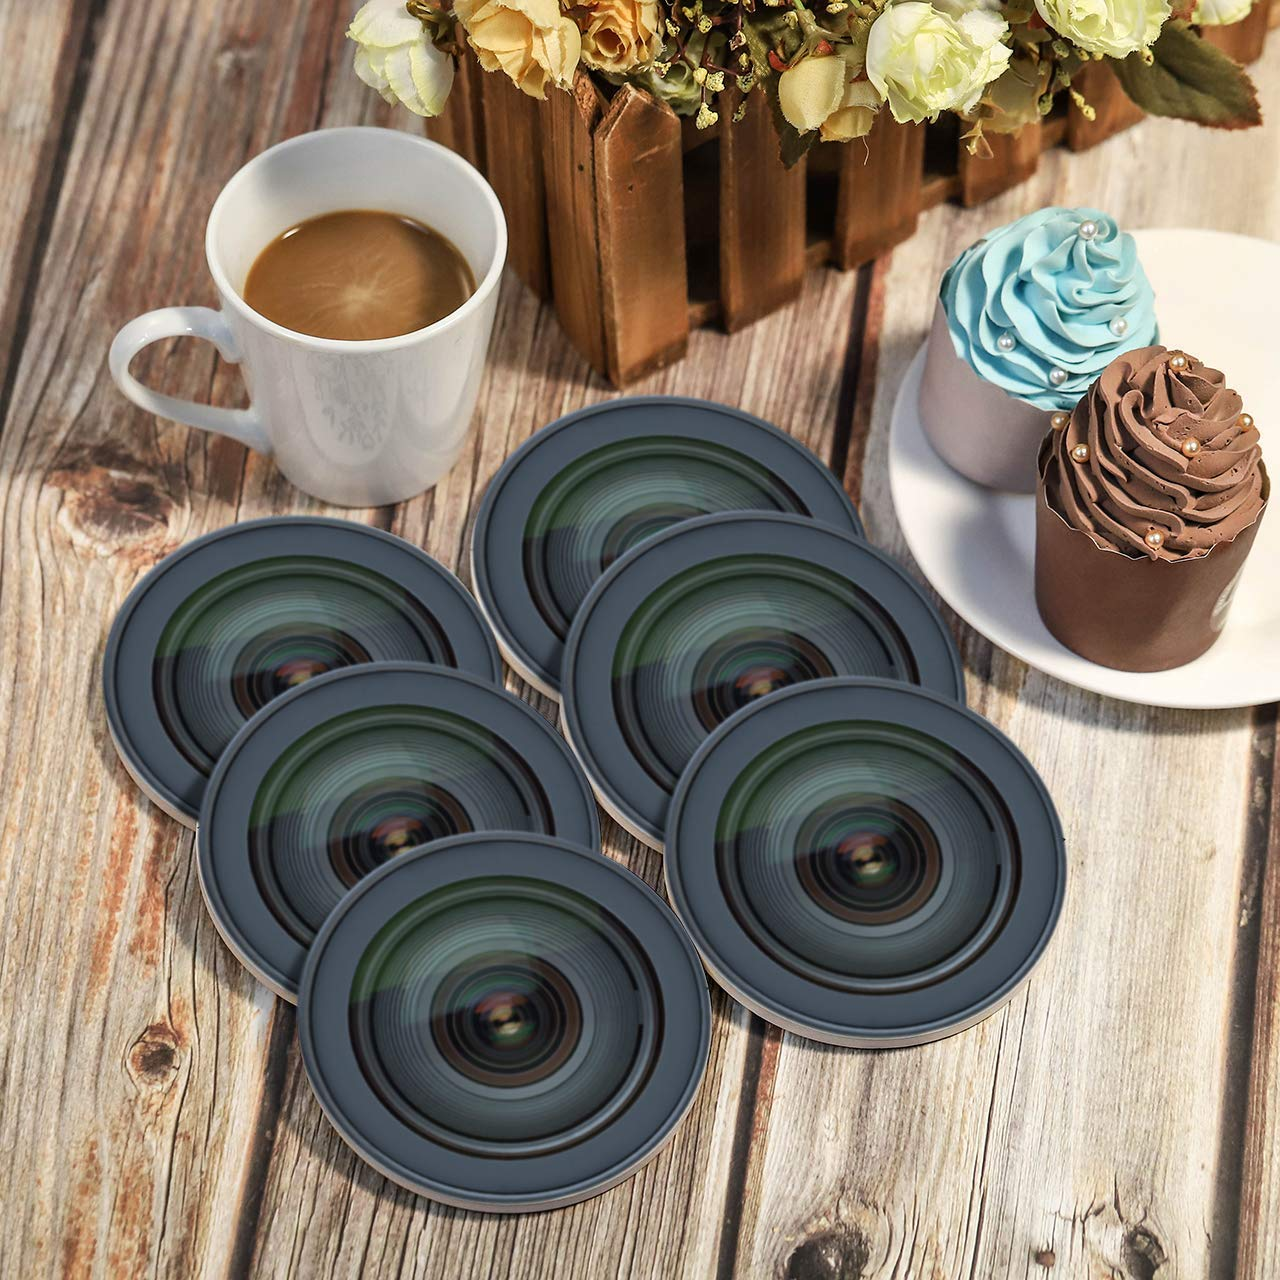 8 Pieces Round Slate Stone Coasters 4 Inch Handmade Coasters for Bar and Home GOH DODD Drink Coasters with Holder Black